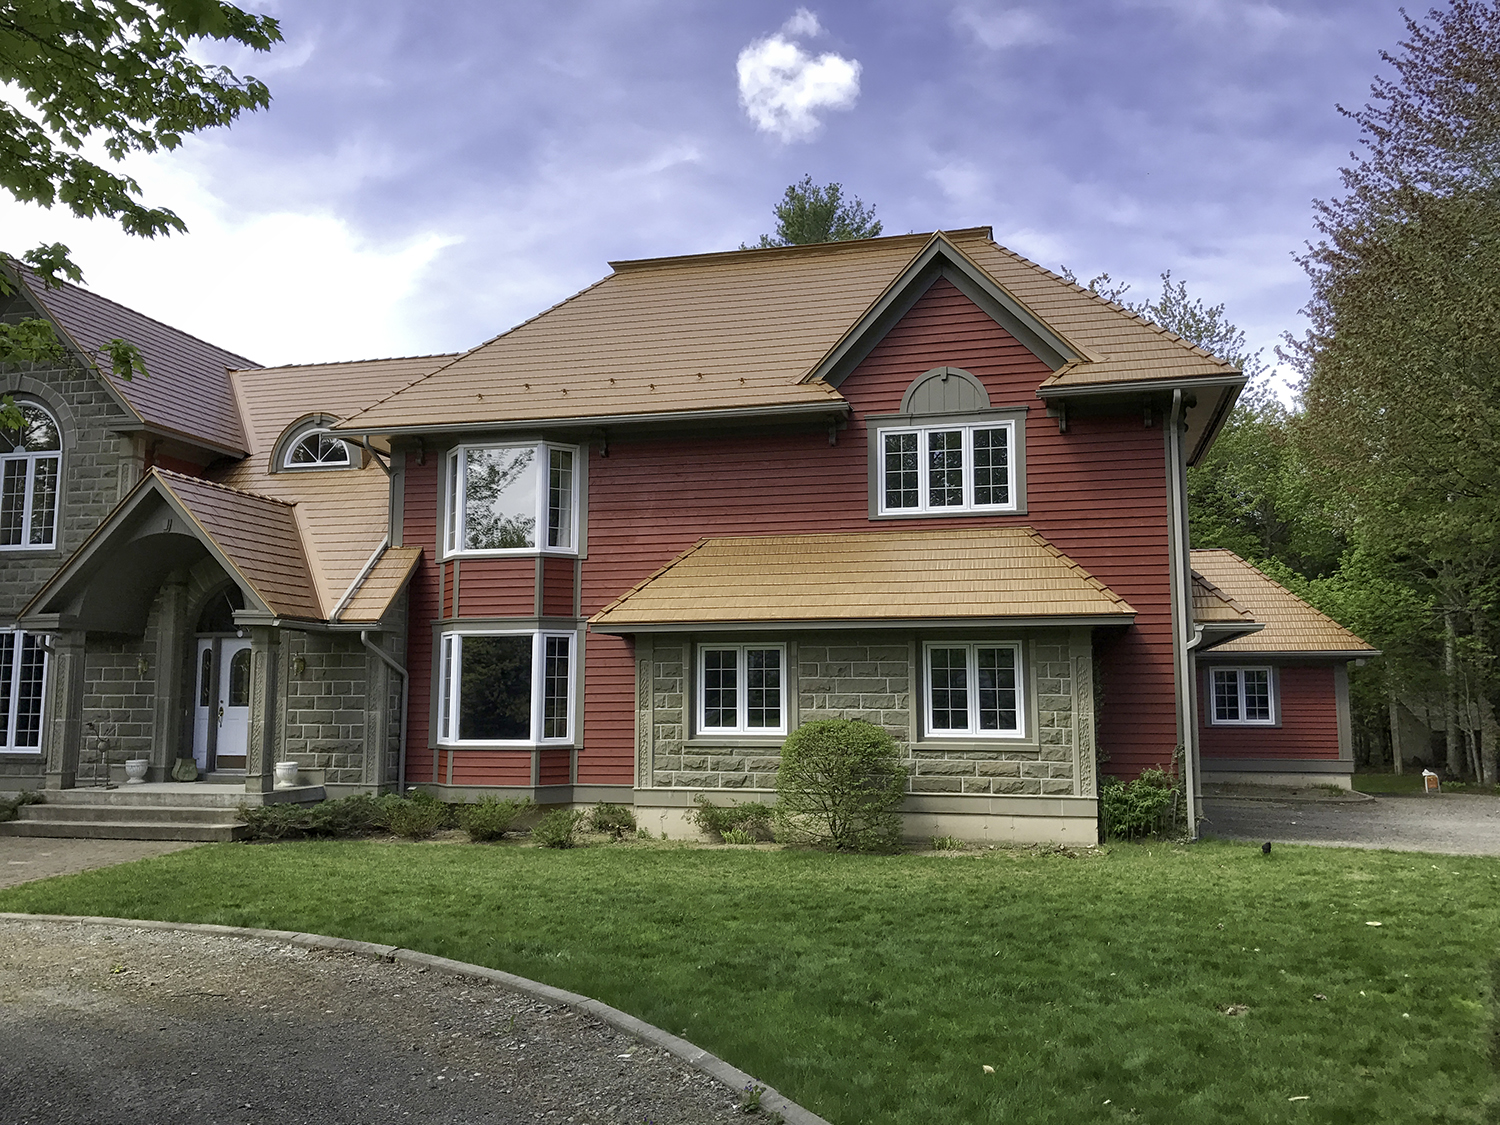 NBMP-16-033-Hanwell-NB-Canada-Aged-Copper-Interlock-Cedar-Shingle-Roof-06